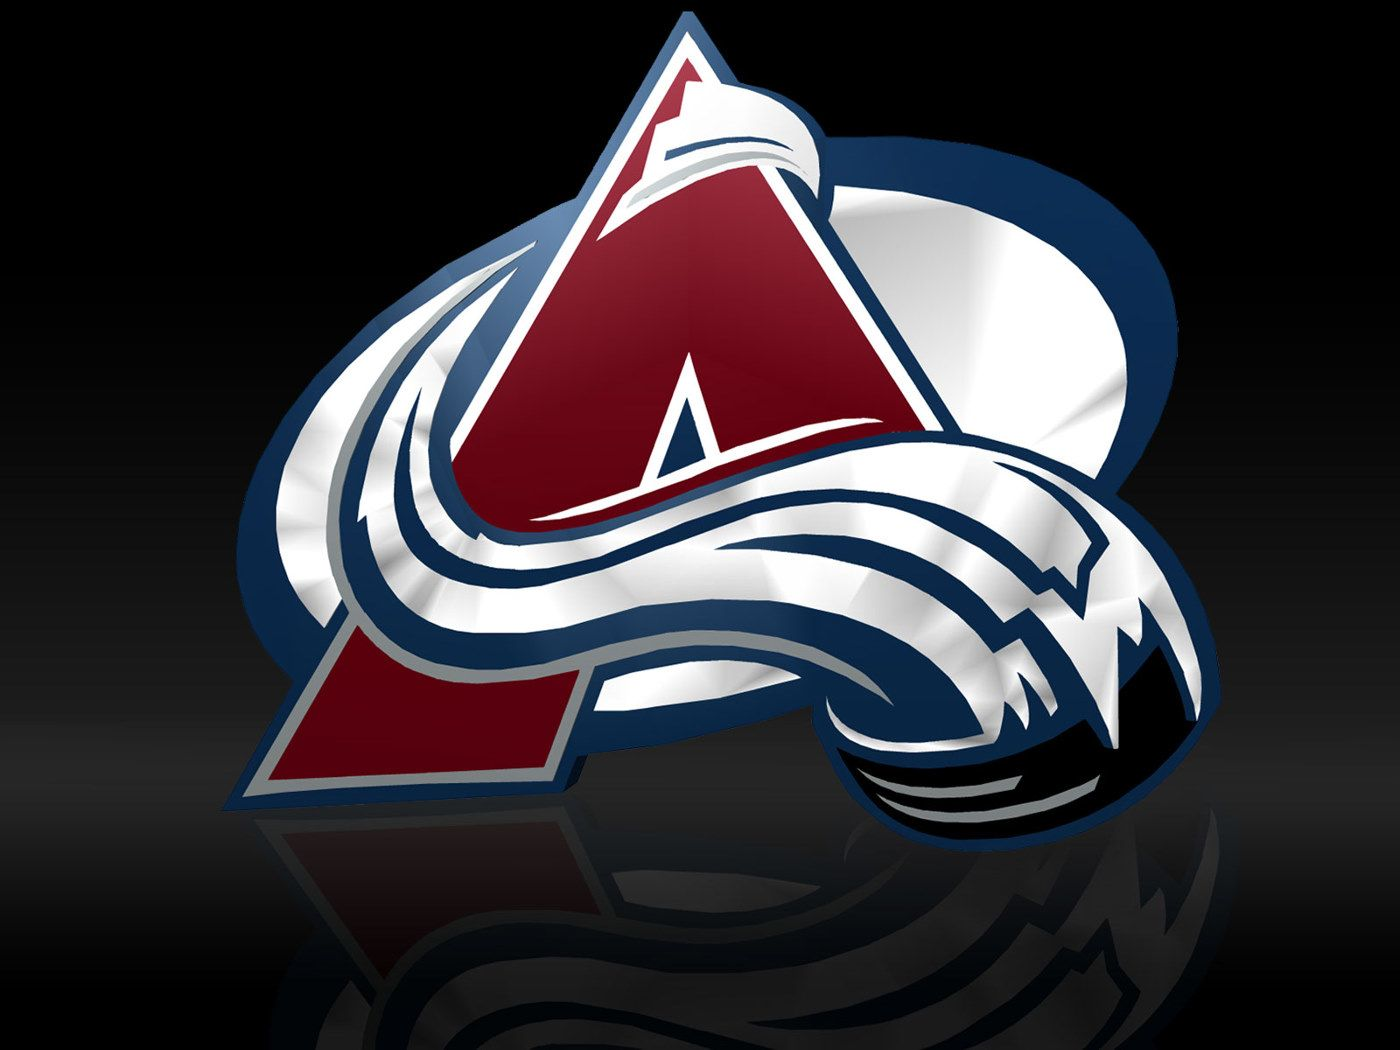 Hockey wallpapers k android apps on google play 1920 1080 hockey wallpapers 44 wallpapers adorable wallpapers wallpapers pinterest hockey and